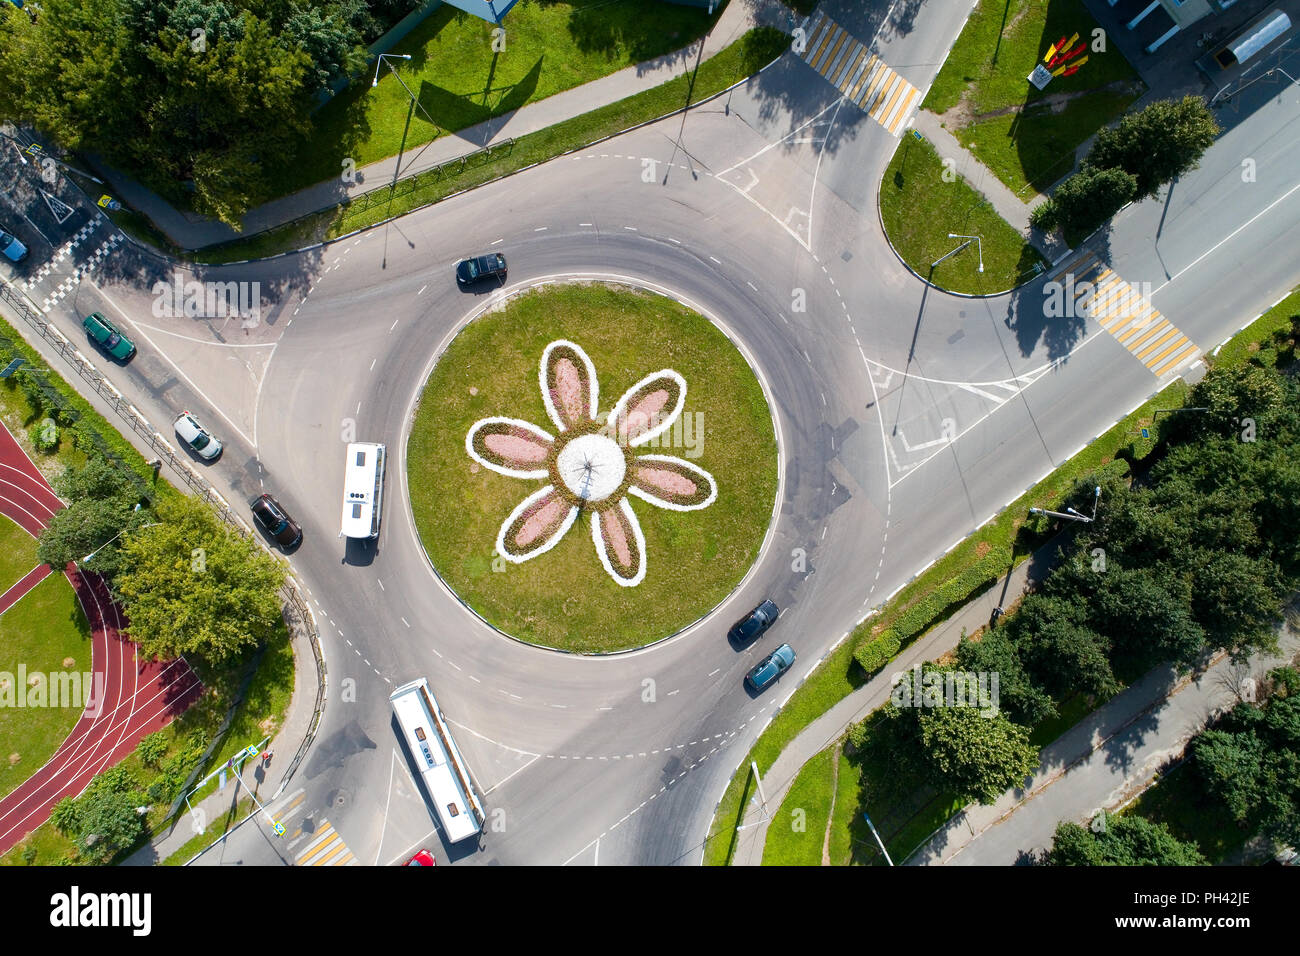 Top view of the road with a circular motion and a flower bed. Aerial photography. - Stock Image